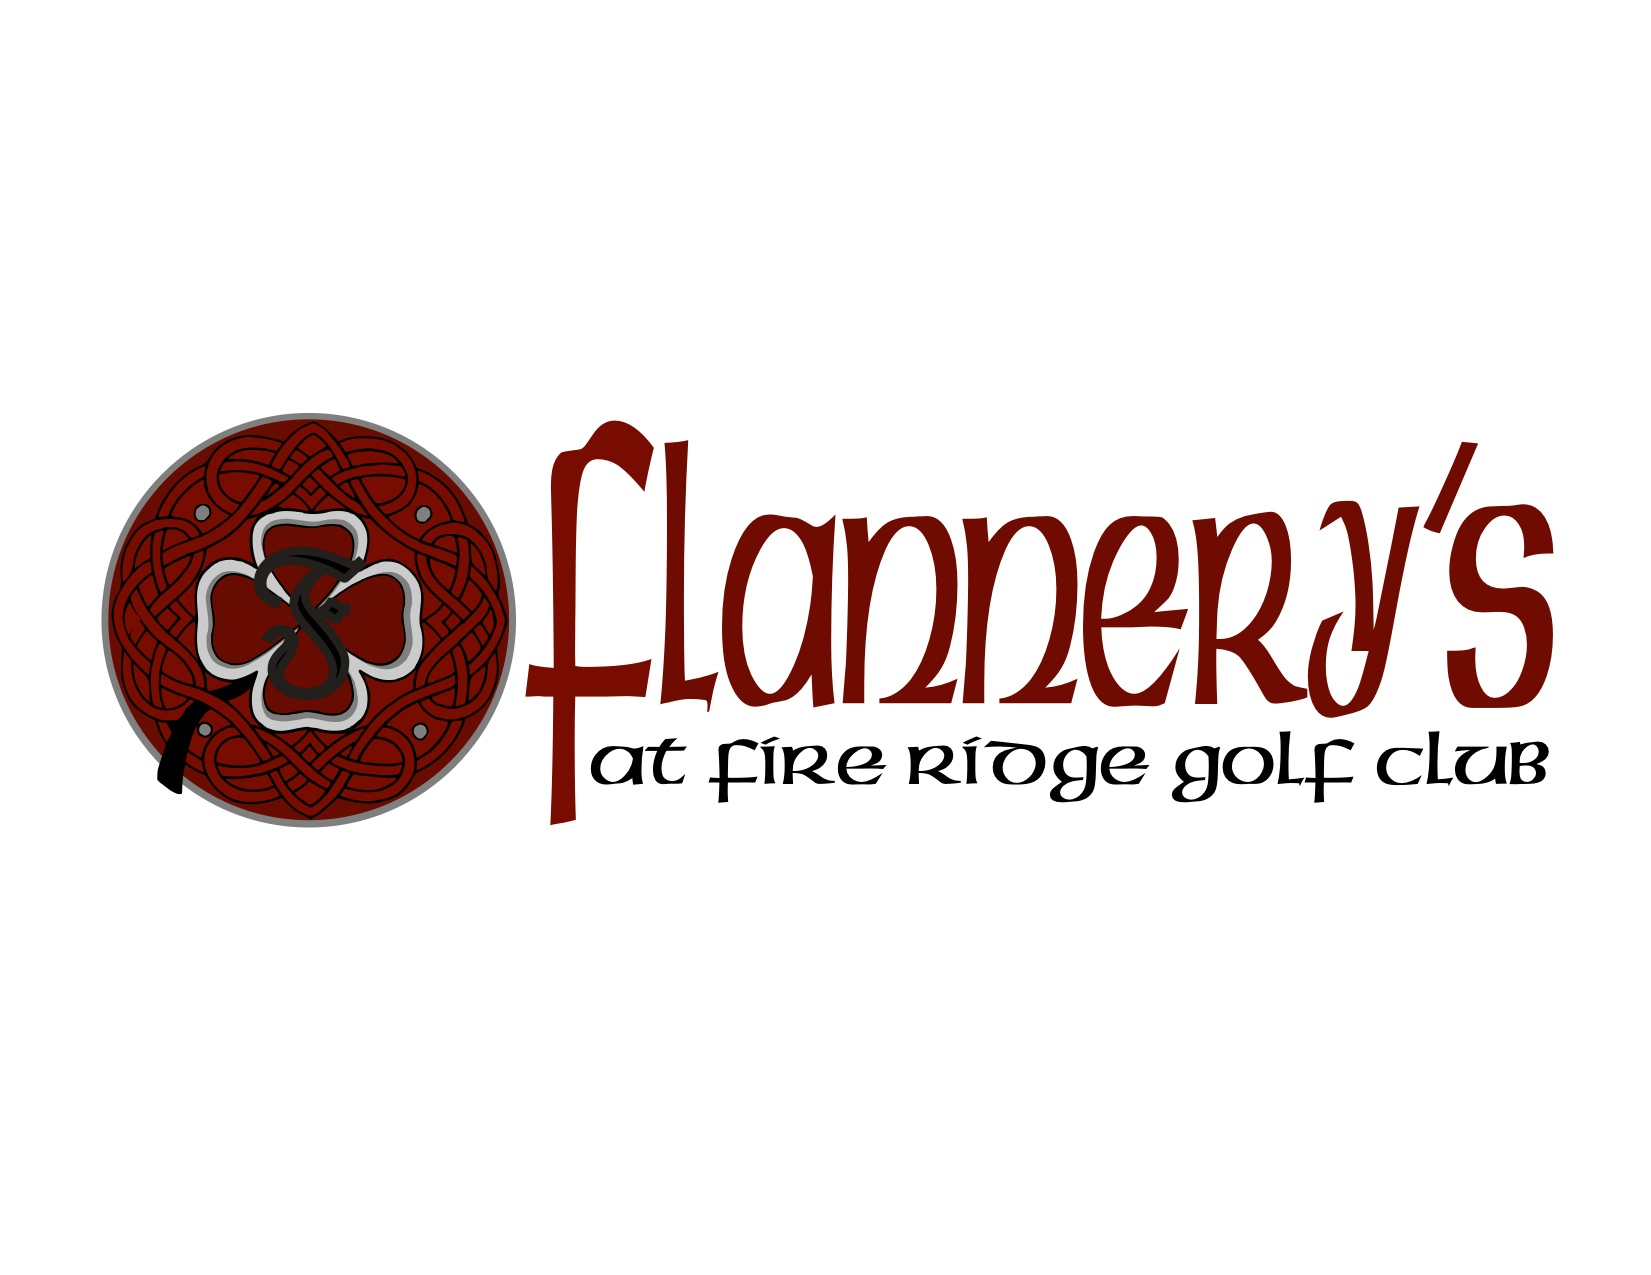 flannery's logo